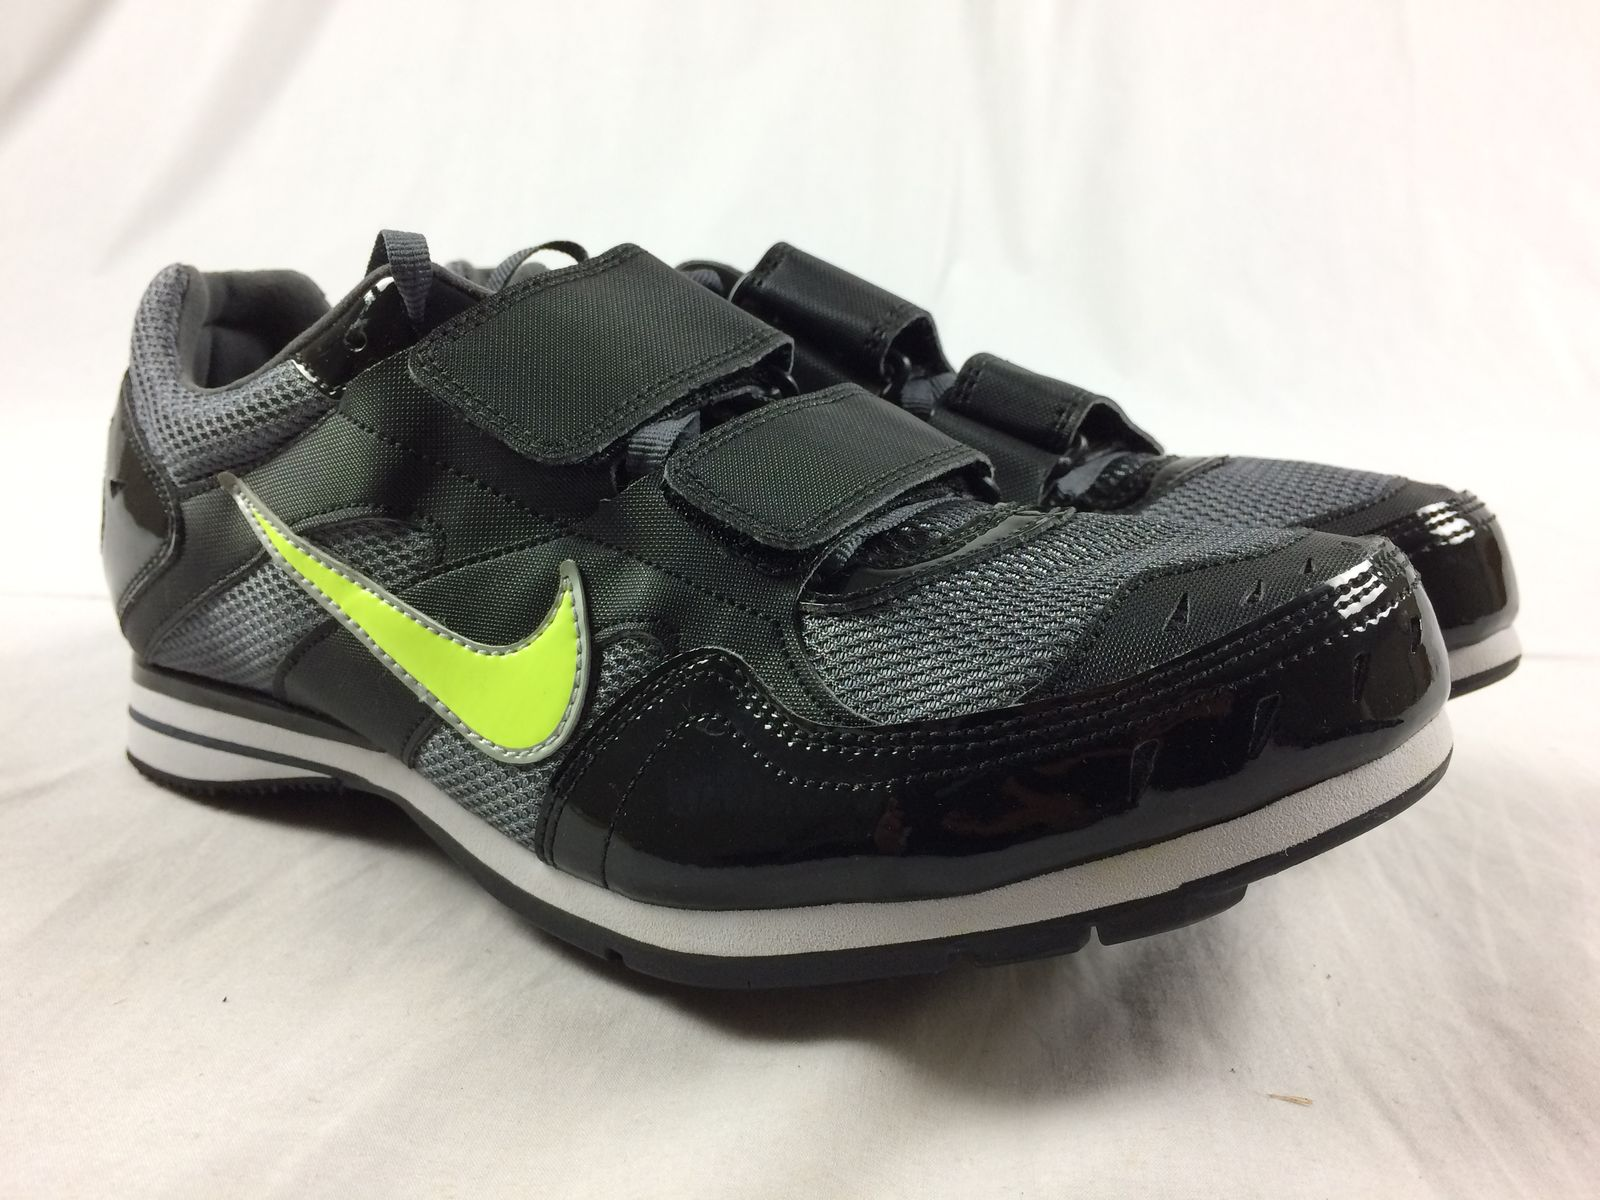 NEW Nike Zoom Tj 3 - Black/Green Running, Cross Training Price reduction  best-selling model of the brand